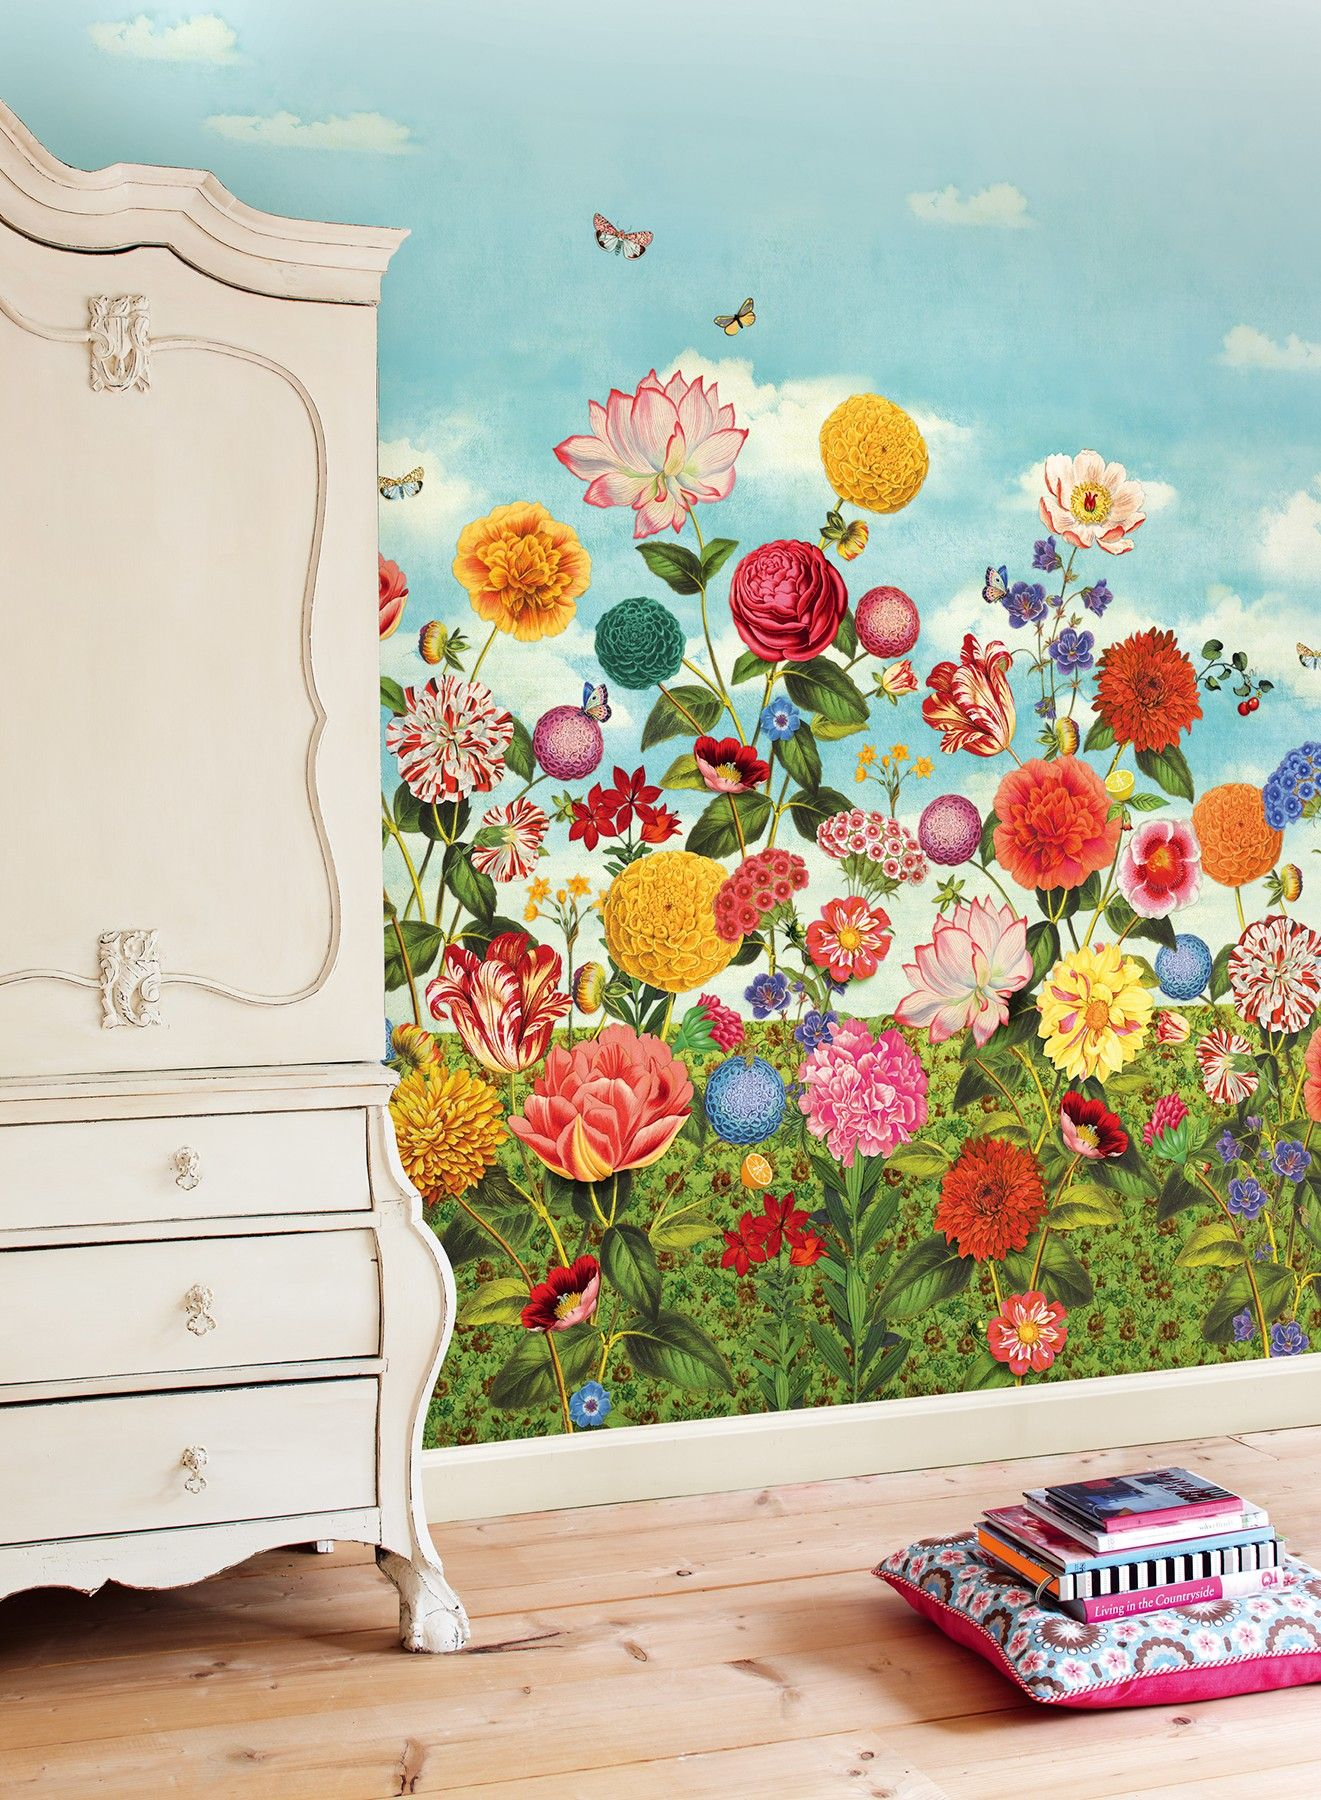 341085 Wild Flowerland Wallpaper Mural The Fabric Co house